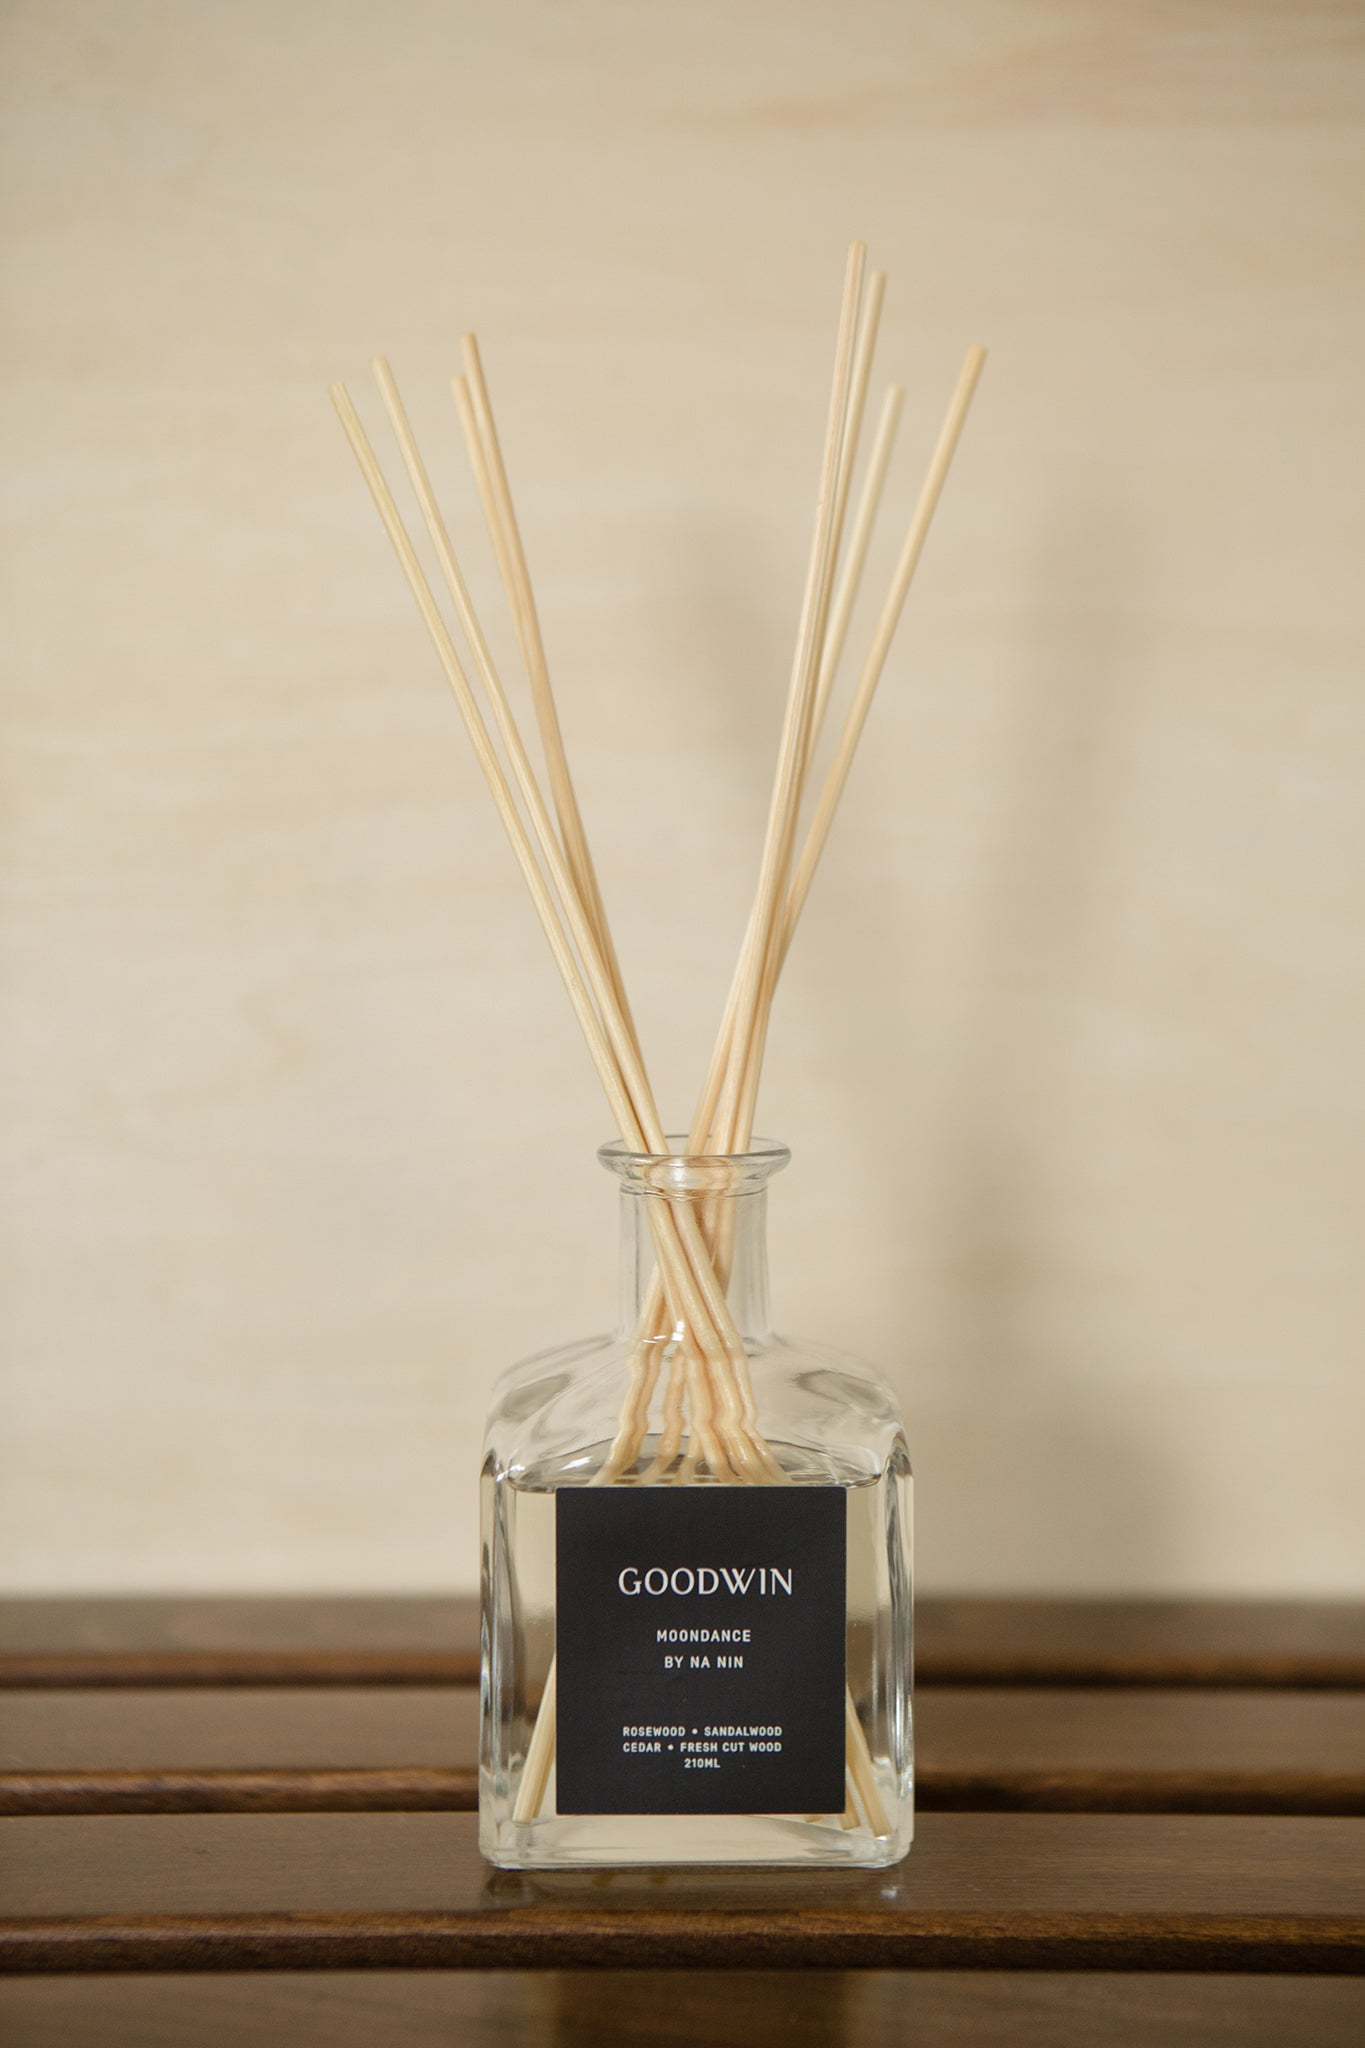 Goodwin Moondance Reed Diffuser